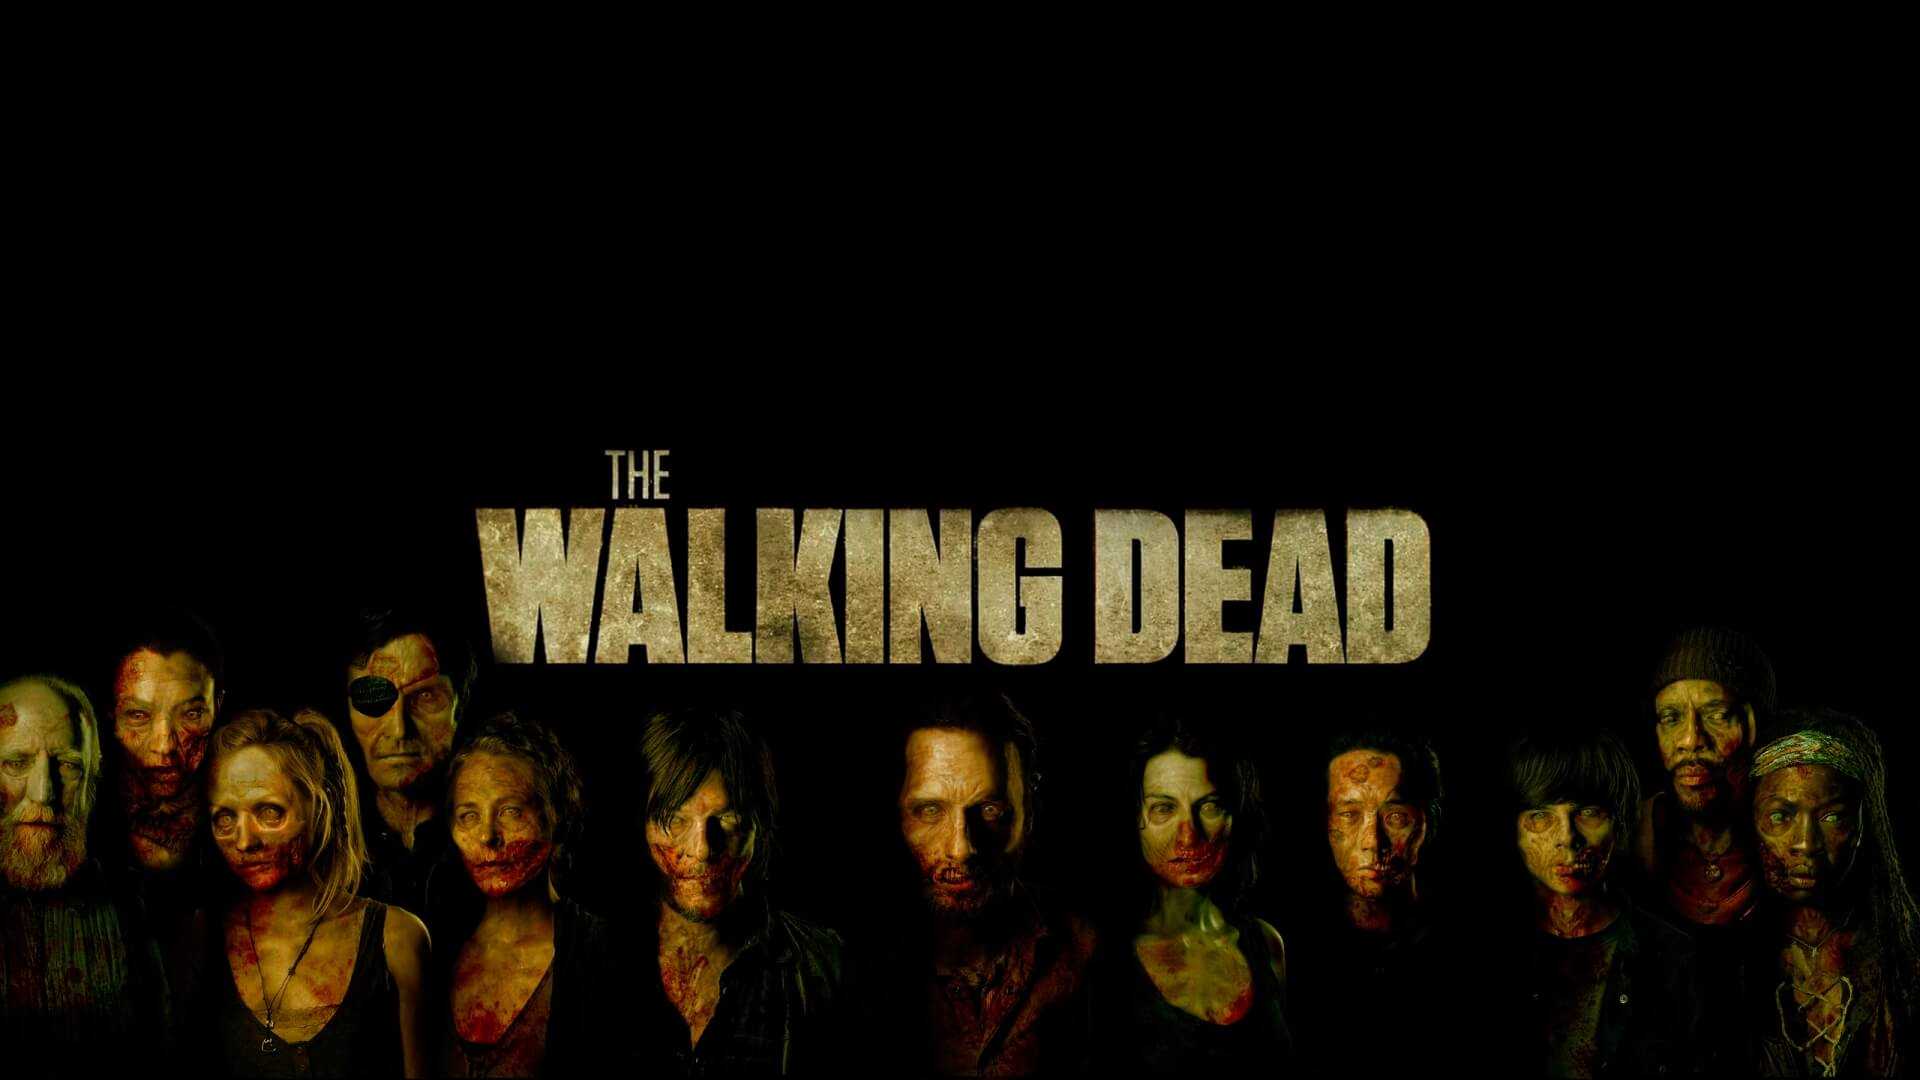 the walking dead hd wallpaper background